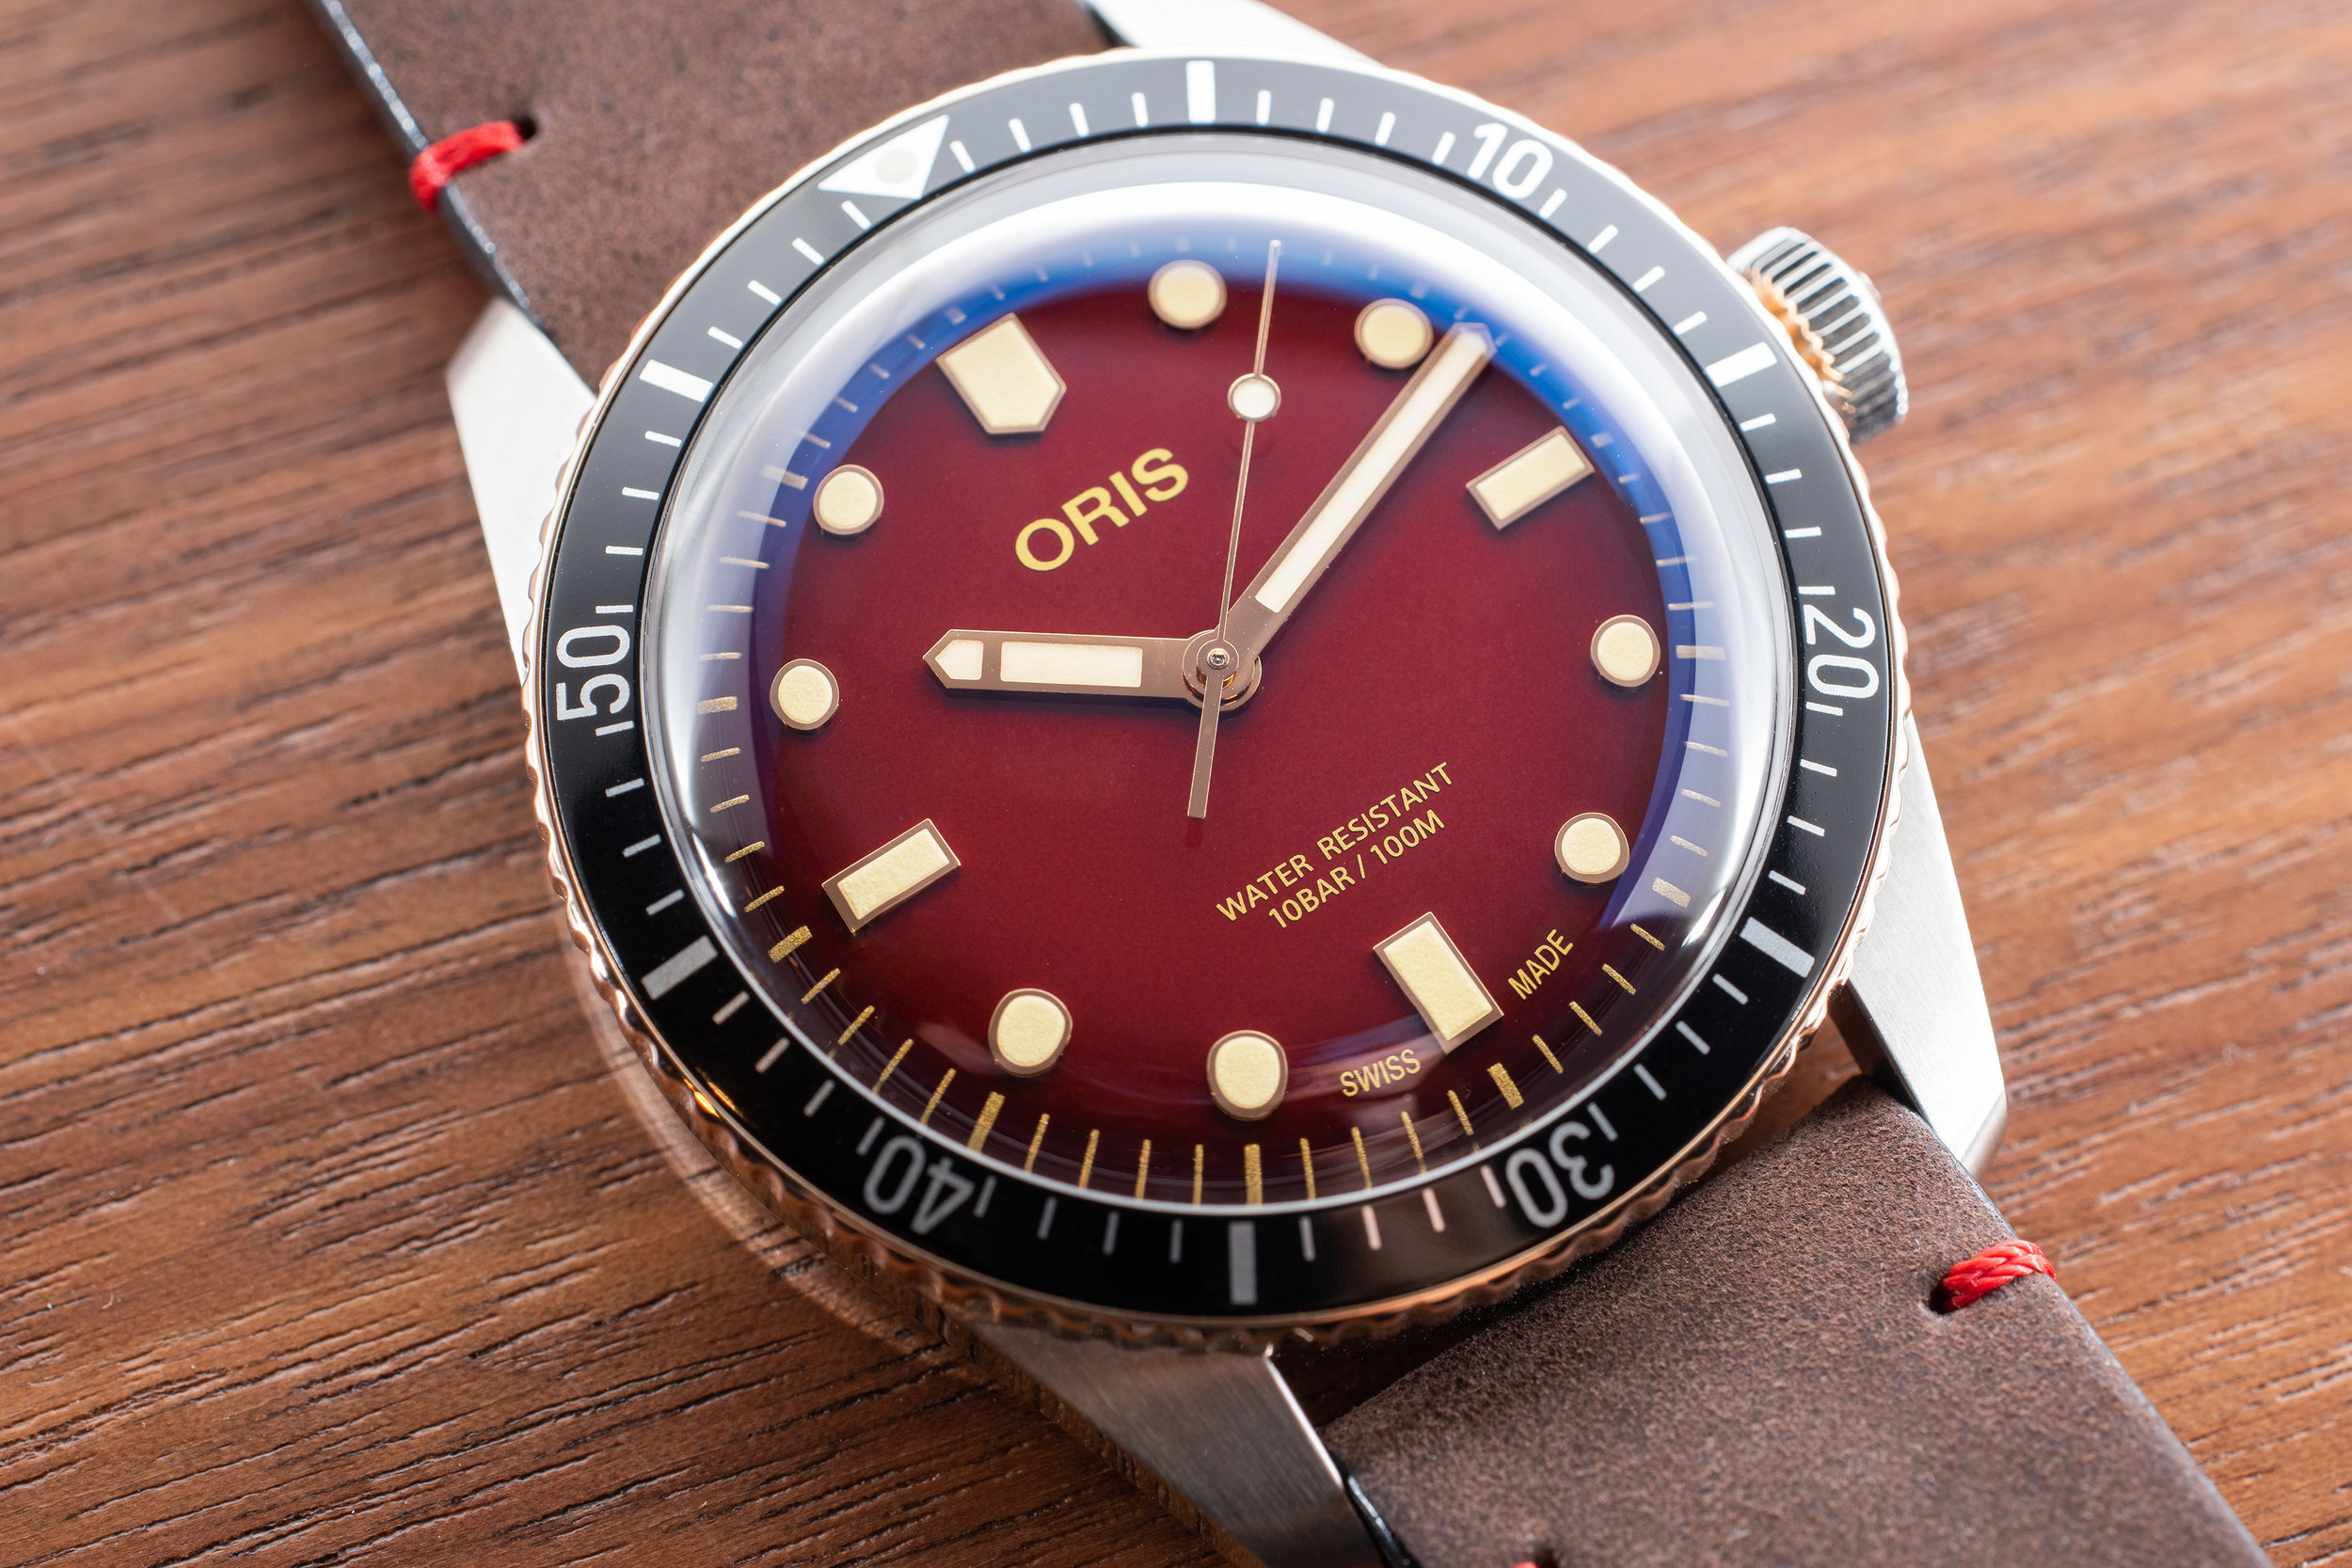 The Oris Divers Sixty-Five RedBar Limited Edition. Photo: Atom Moore